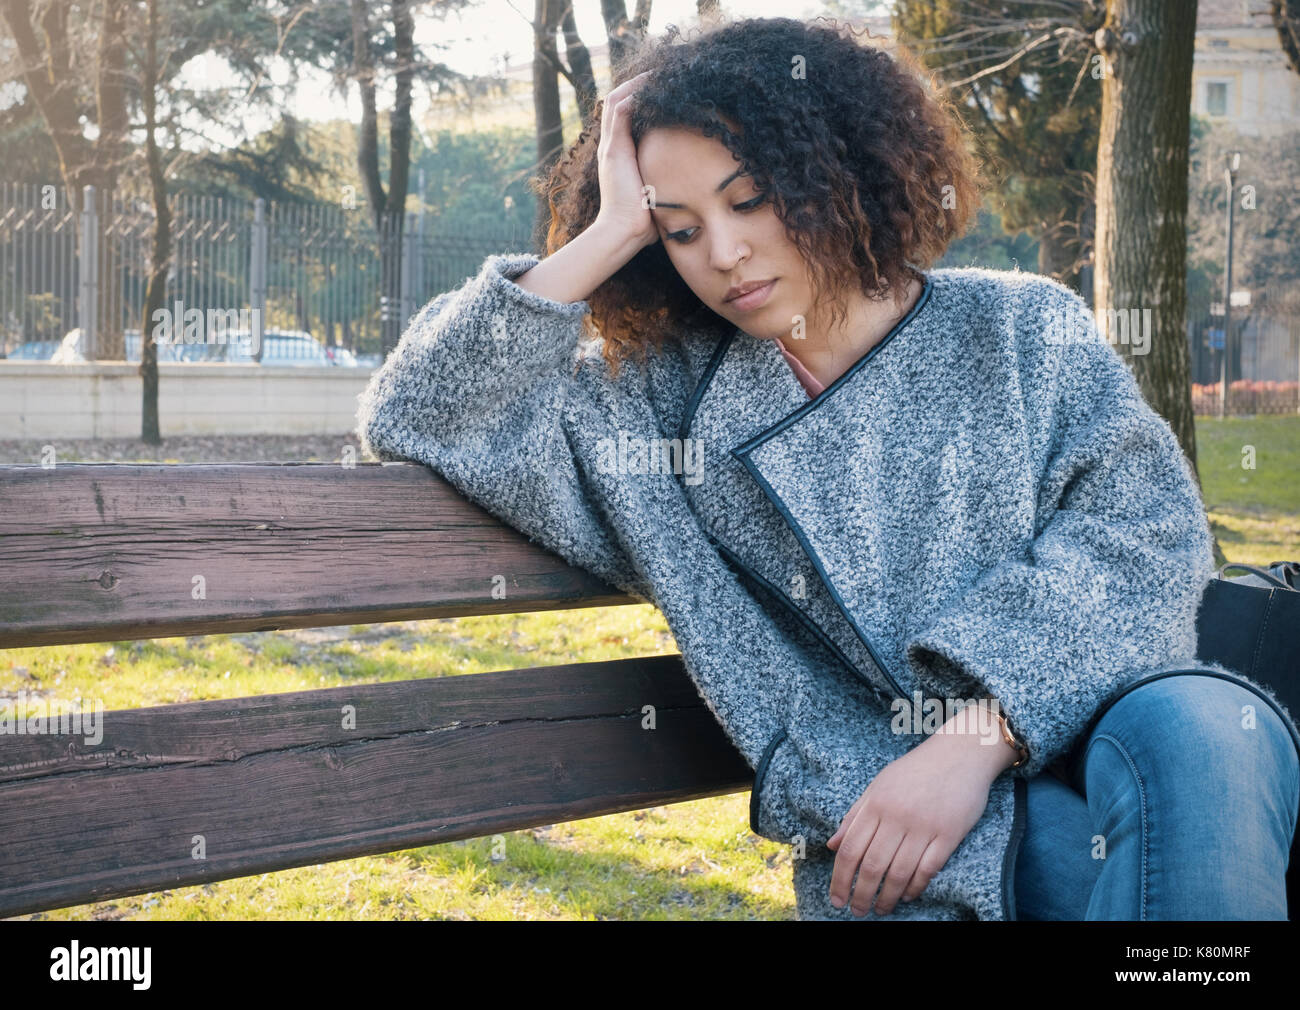 Sad black woman seated alone on a bench at the park - Stock Image